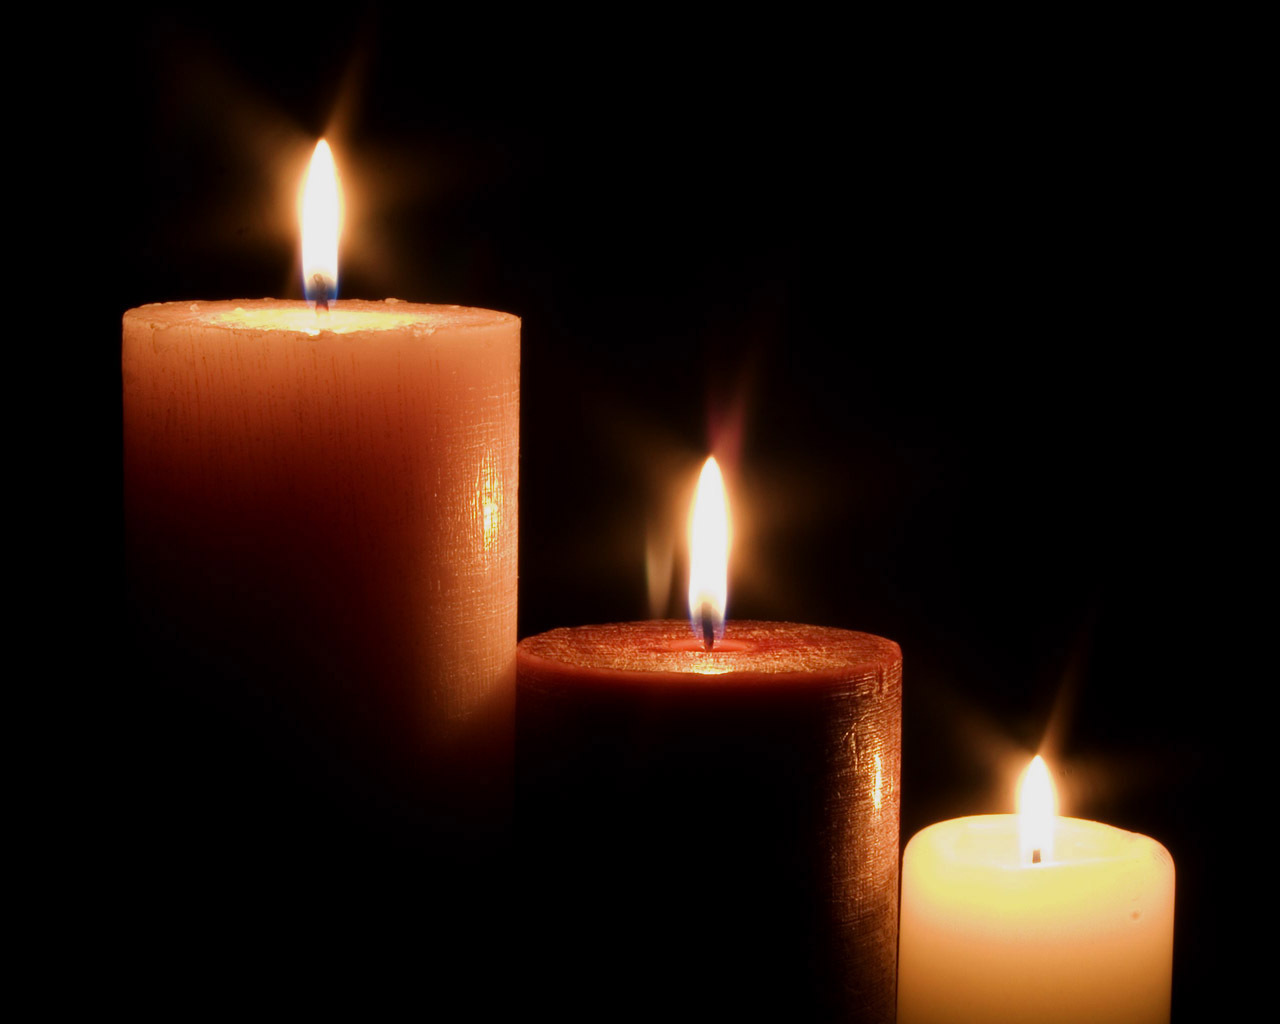 Http Www Fanpop Com Clubs Candles Images 4091186 Title Candle Wallpaper Wallpaper